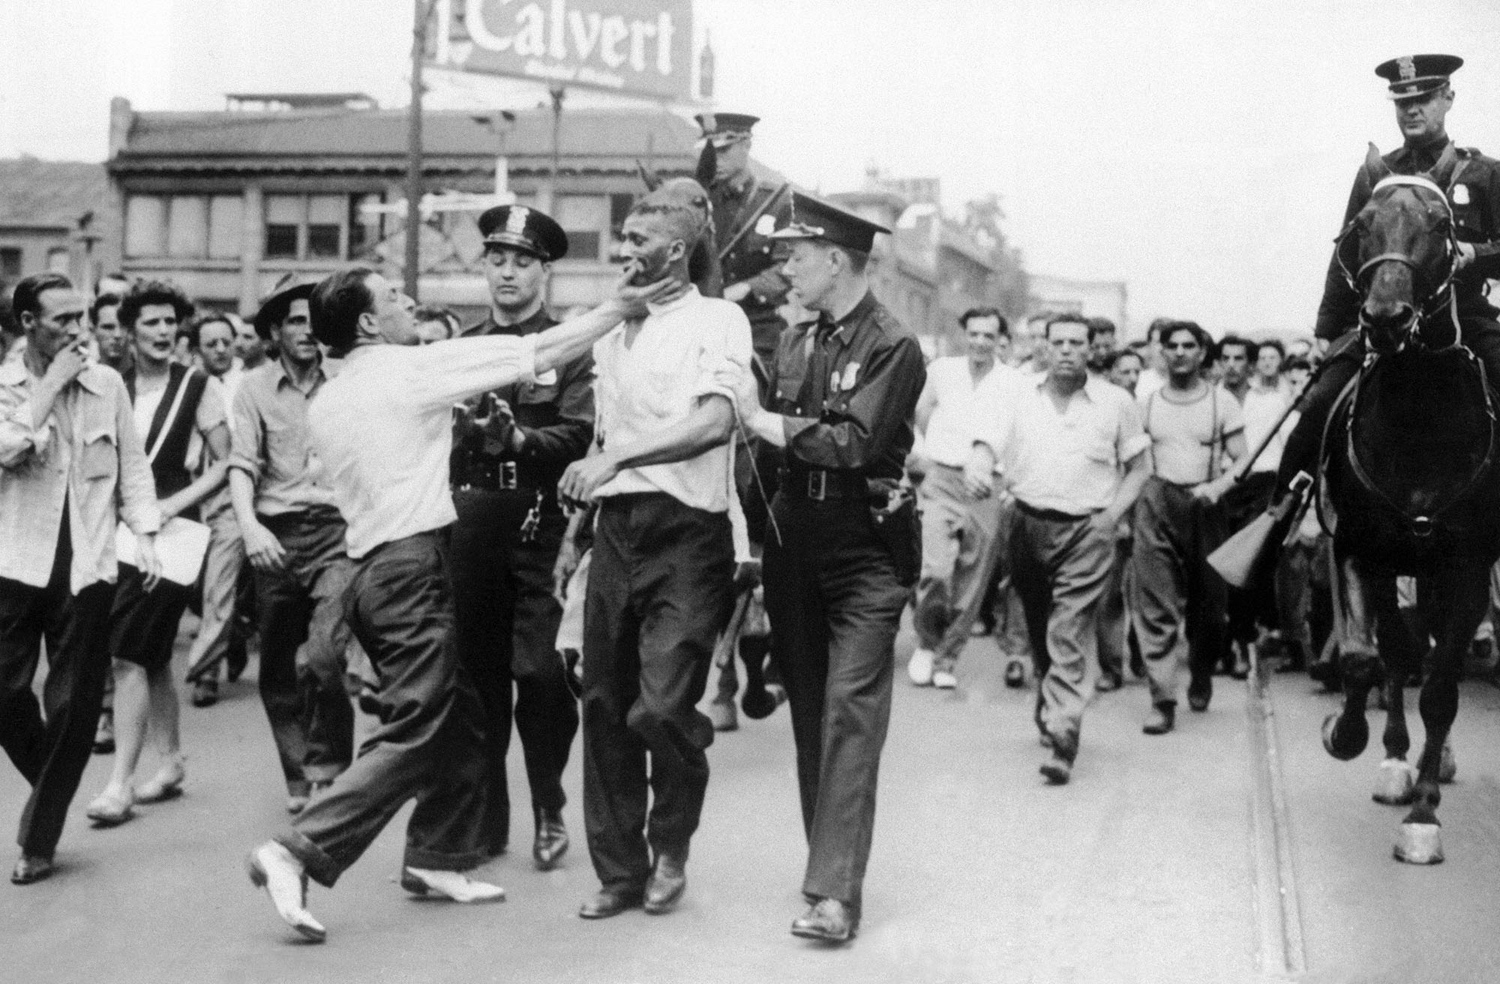 detroit riots of 1943 essay